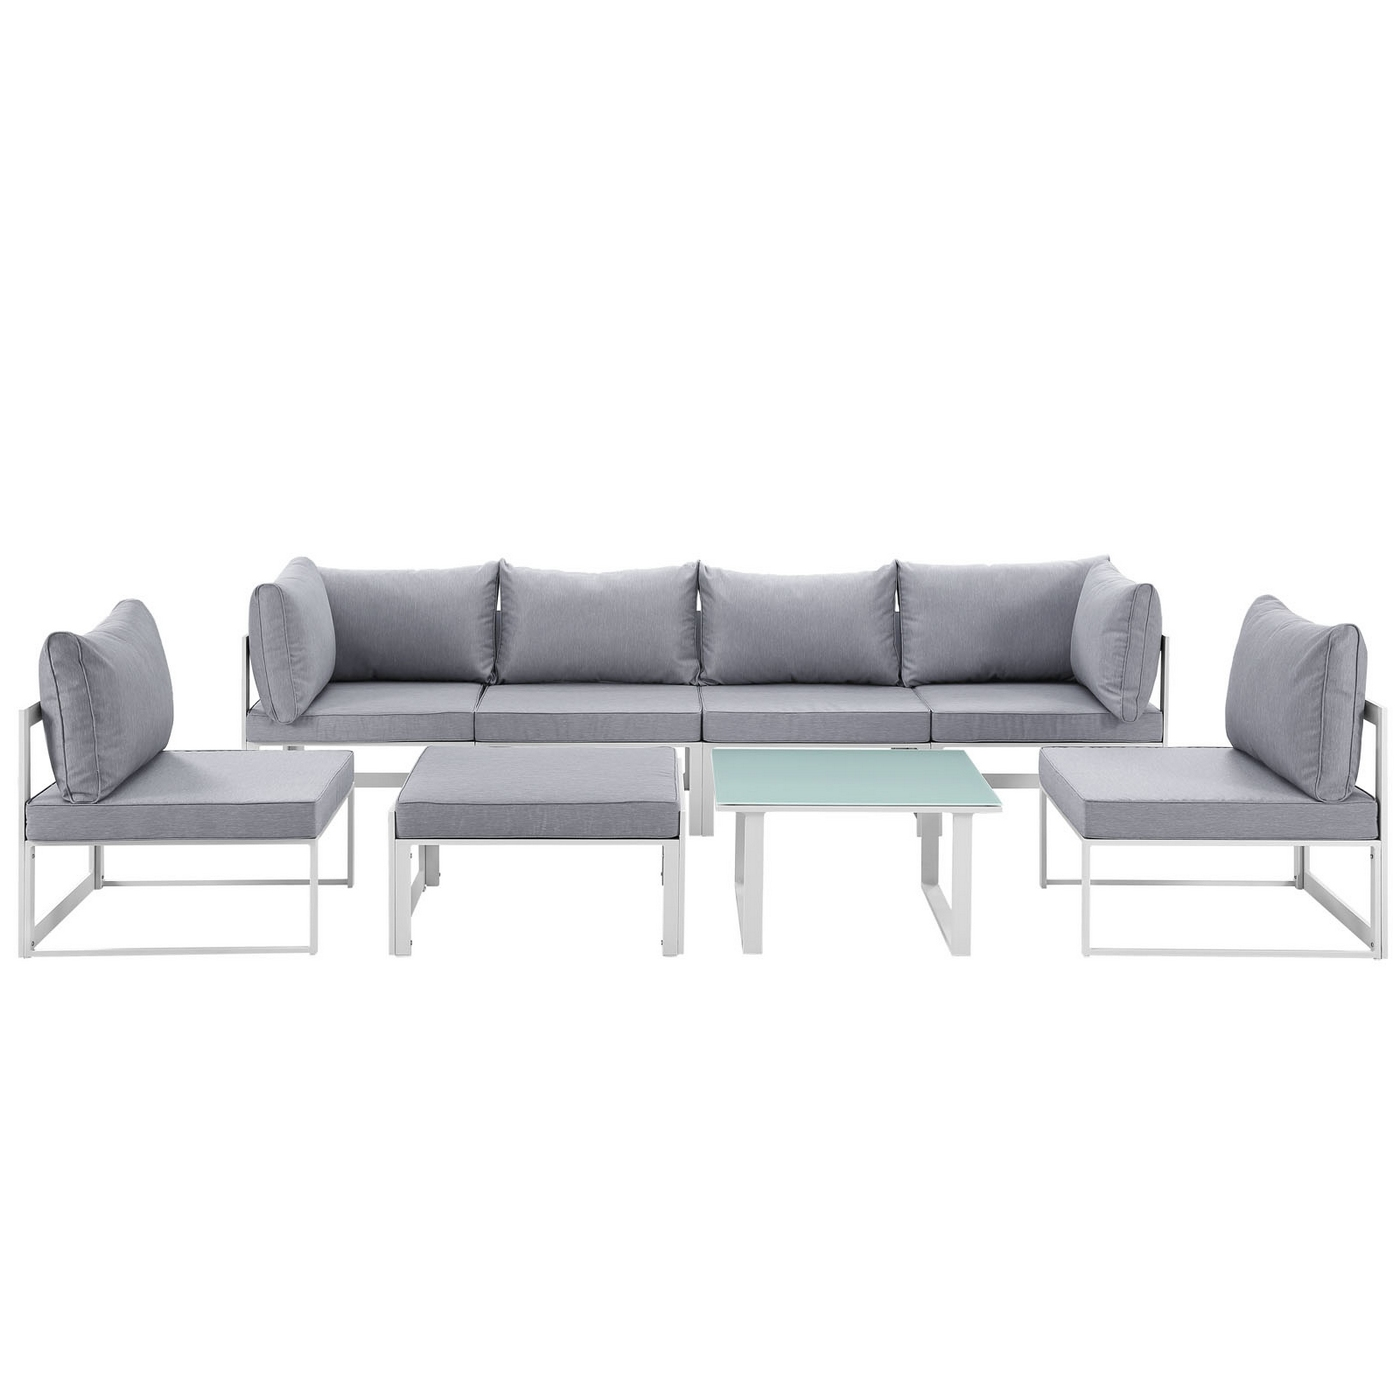 Groovy Details About Fortuna 8 Piece Outdoor Patio Sectional Sofa Set W Upholstered Seat White Gray Customarchery Wood Chair Design Ideas Customarcherynet